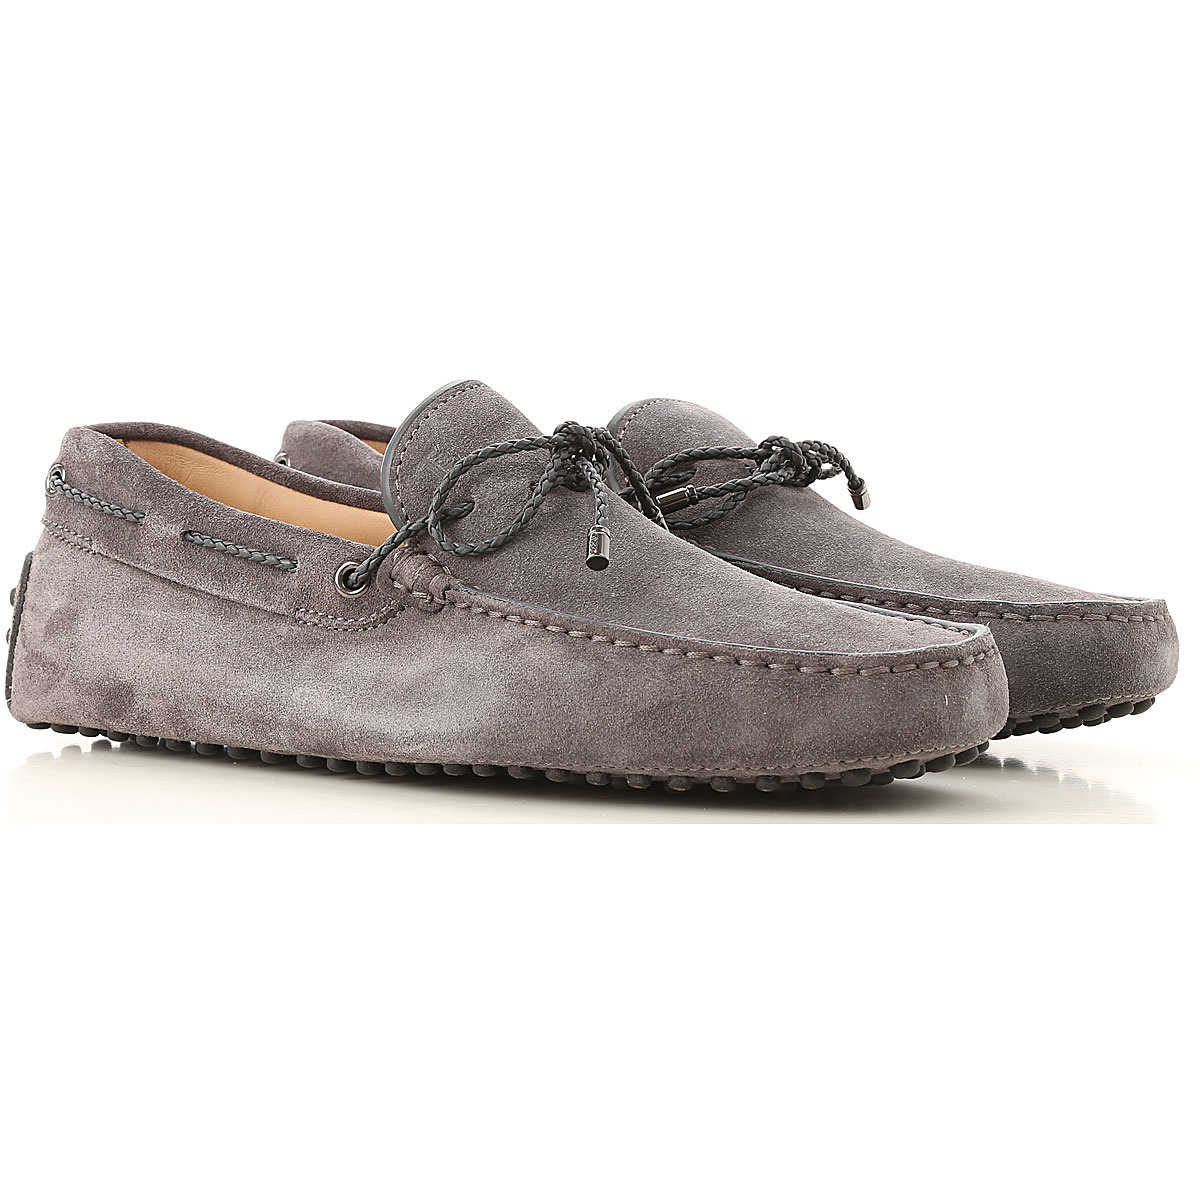 Tods Loafers for Men On Sale Grey - GOOFASH